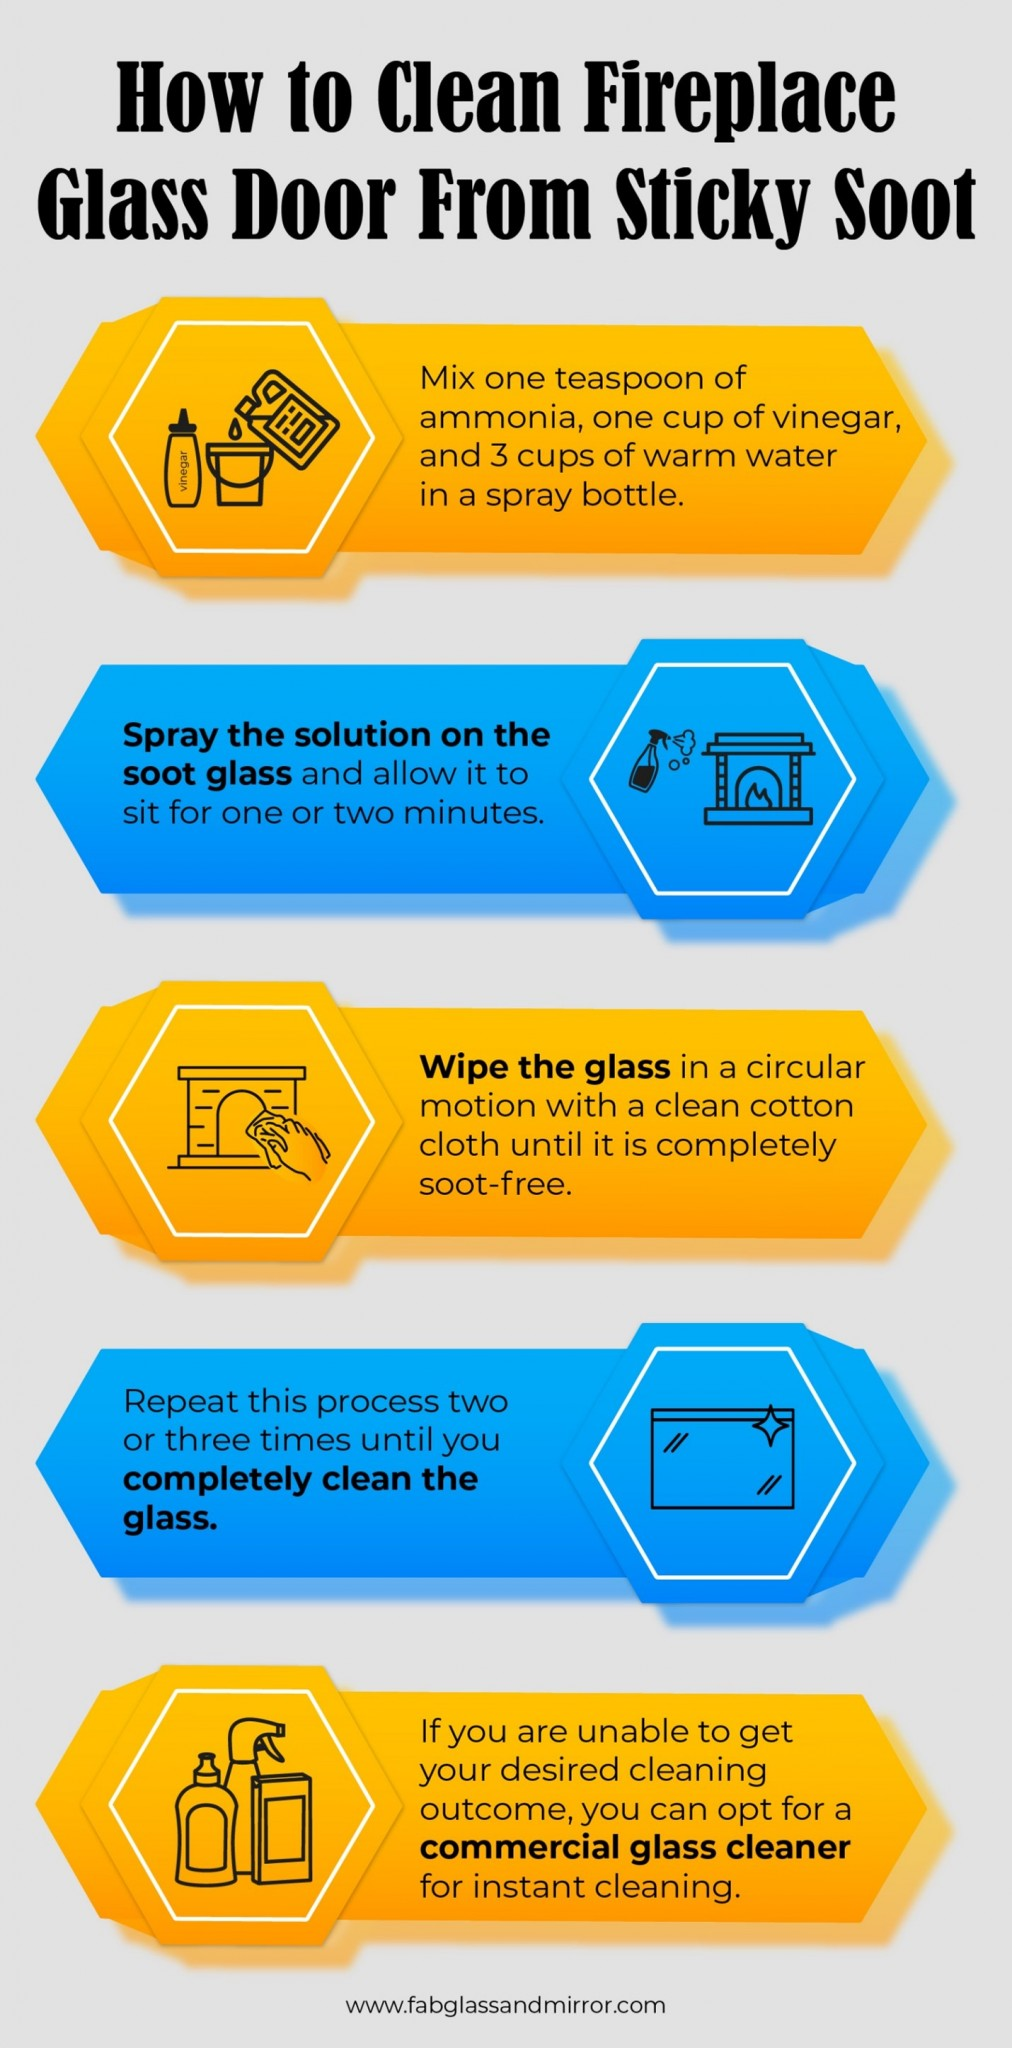 Infographic About How to Clean your Fireplace Glass Doors